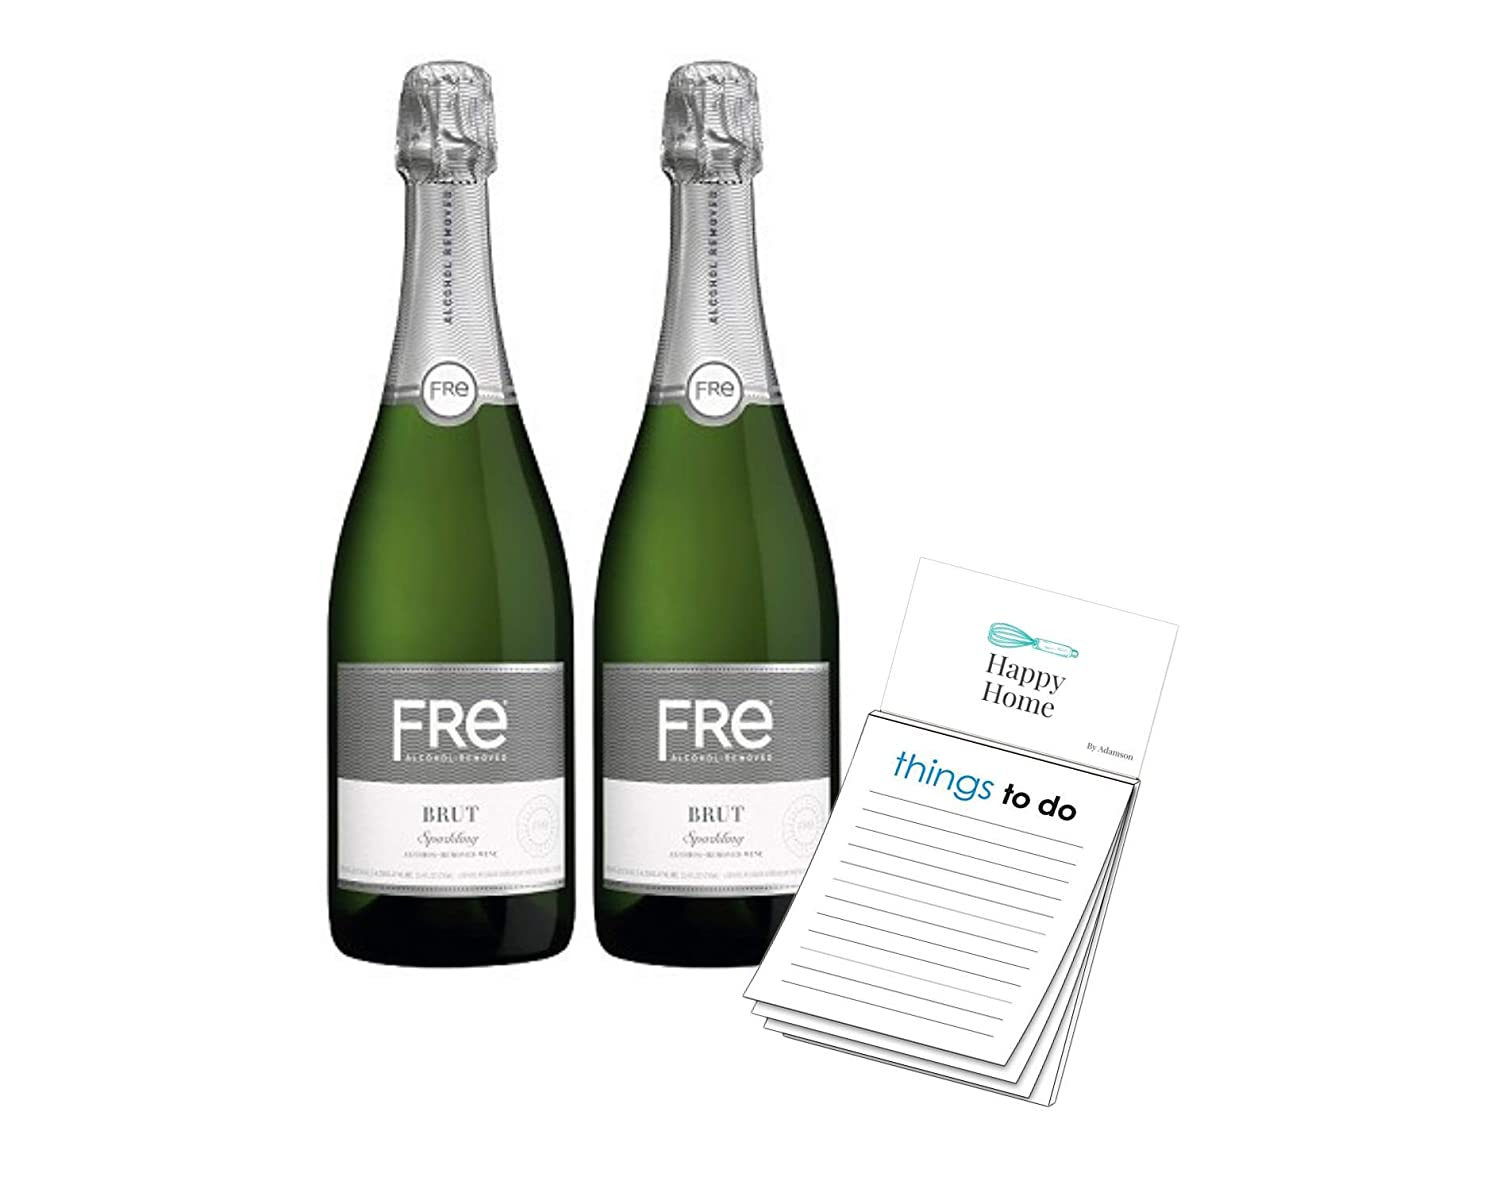 Sutter Home Fre Brut Non-alcoholic Champagne Wine (2 pack)